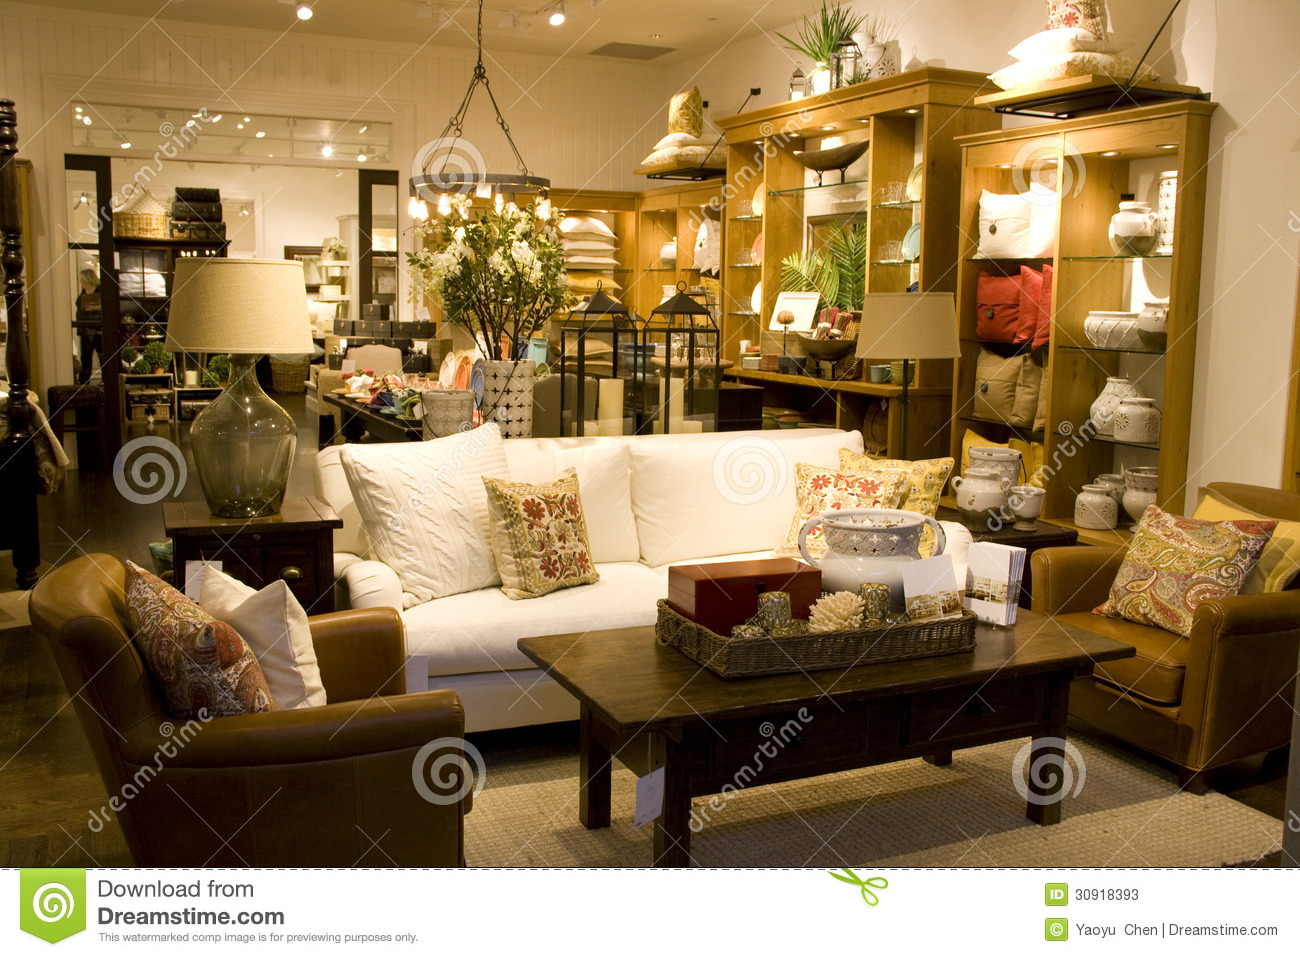 Home decor outlet beautiful the home decor outlet with for Home decorations outlet